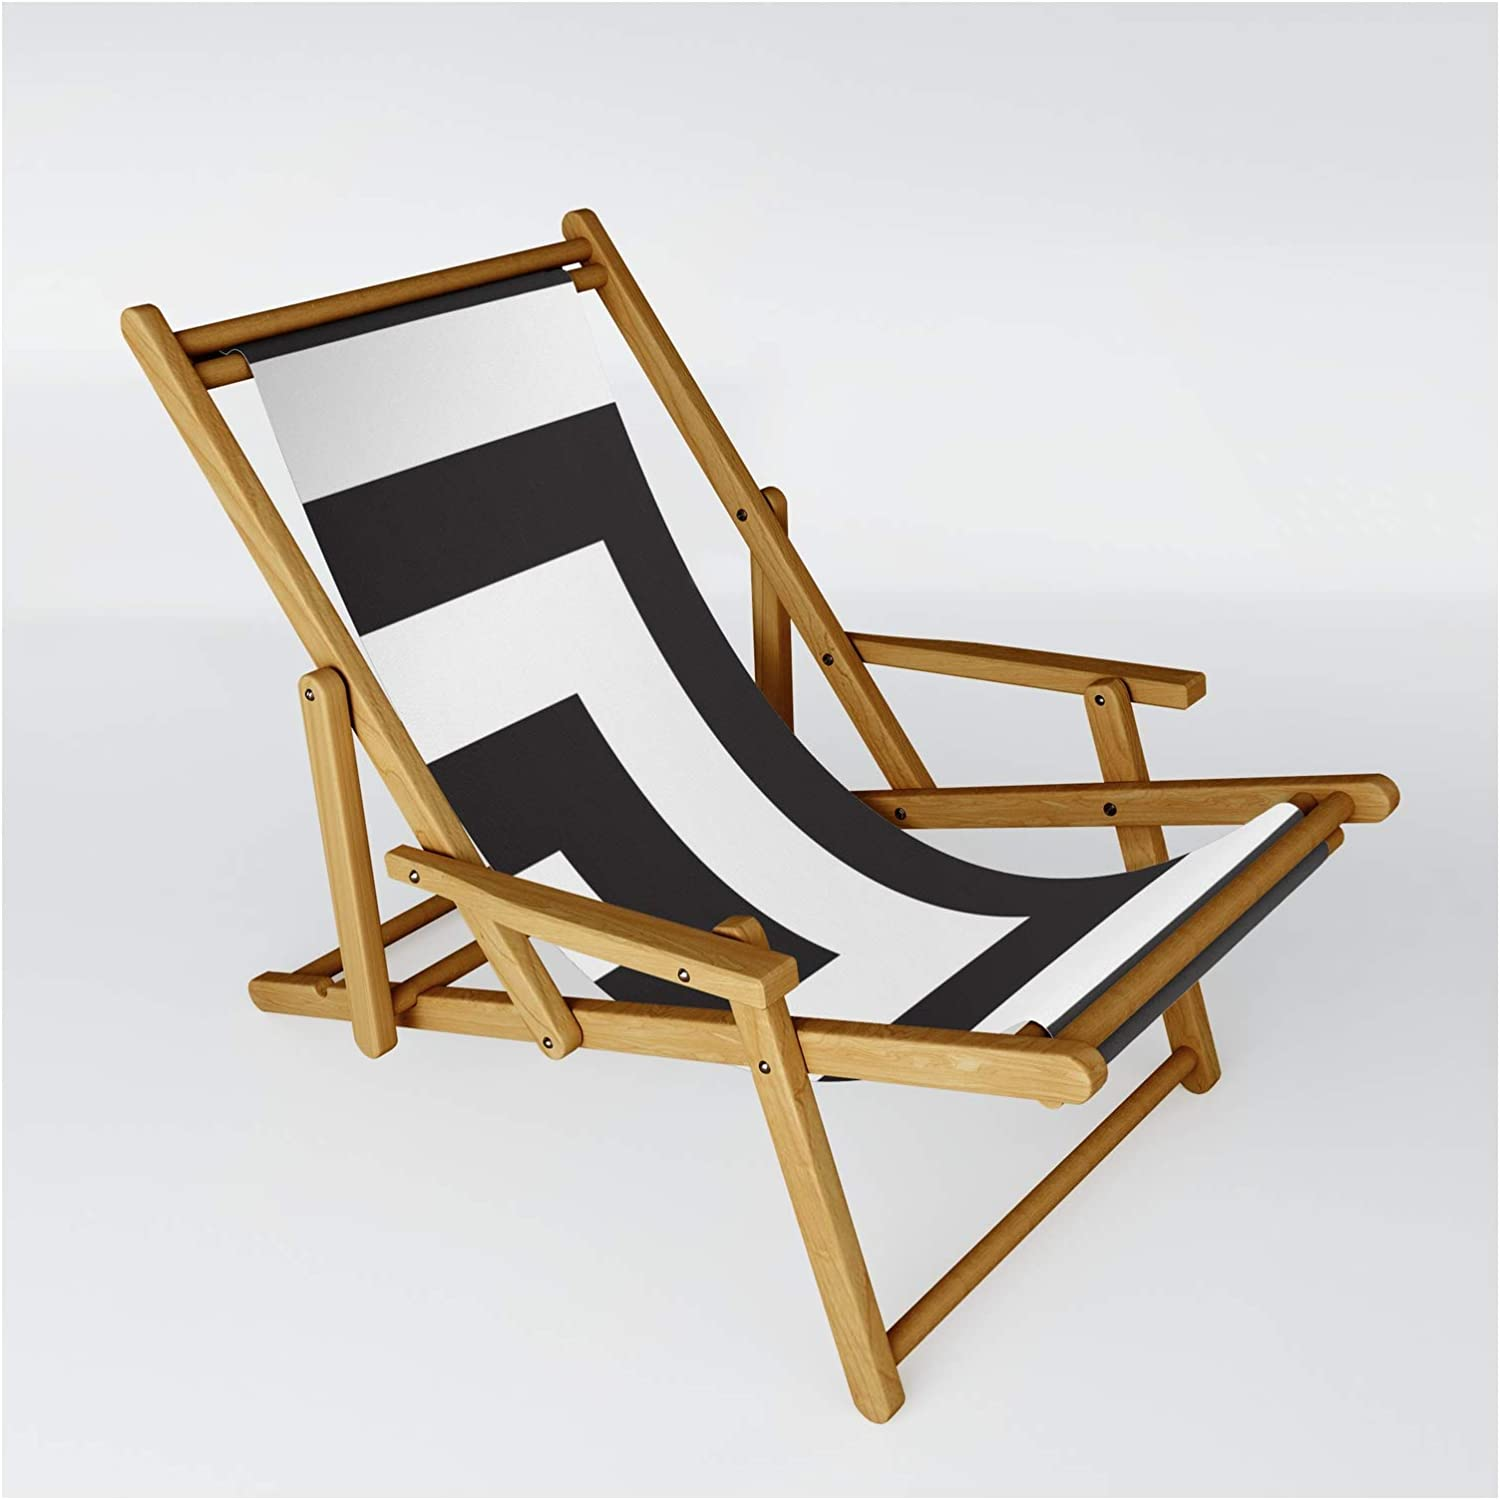 Black Greek Stripes by Caitlin Special price for a limited time Workman on - One Size Sling Chair Super sale period limited